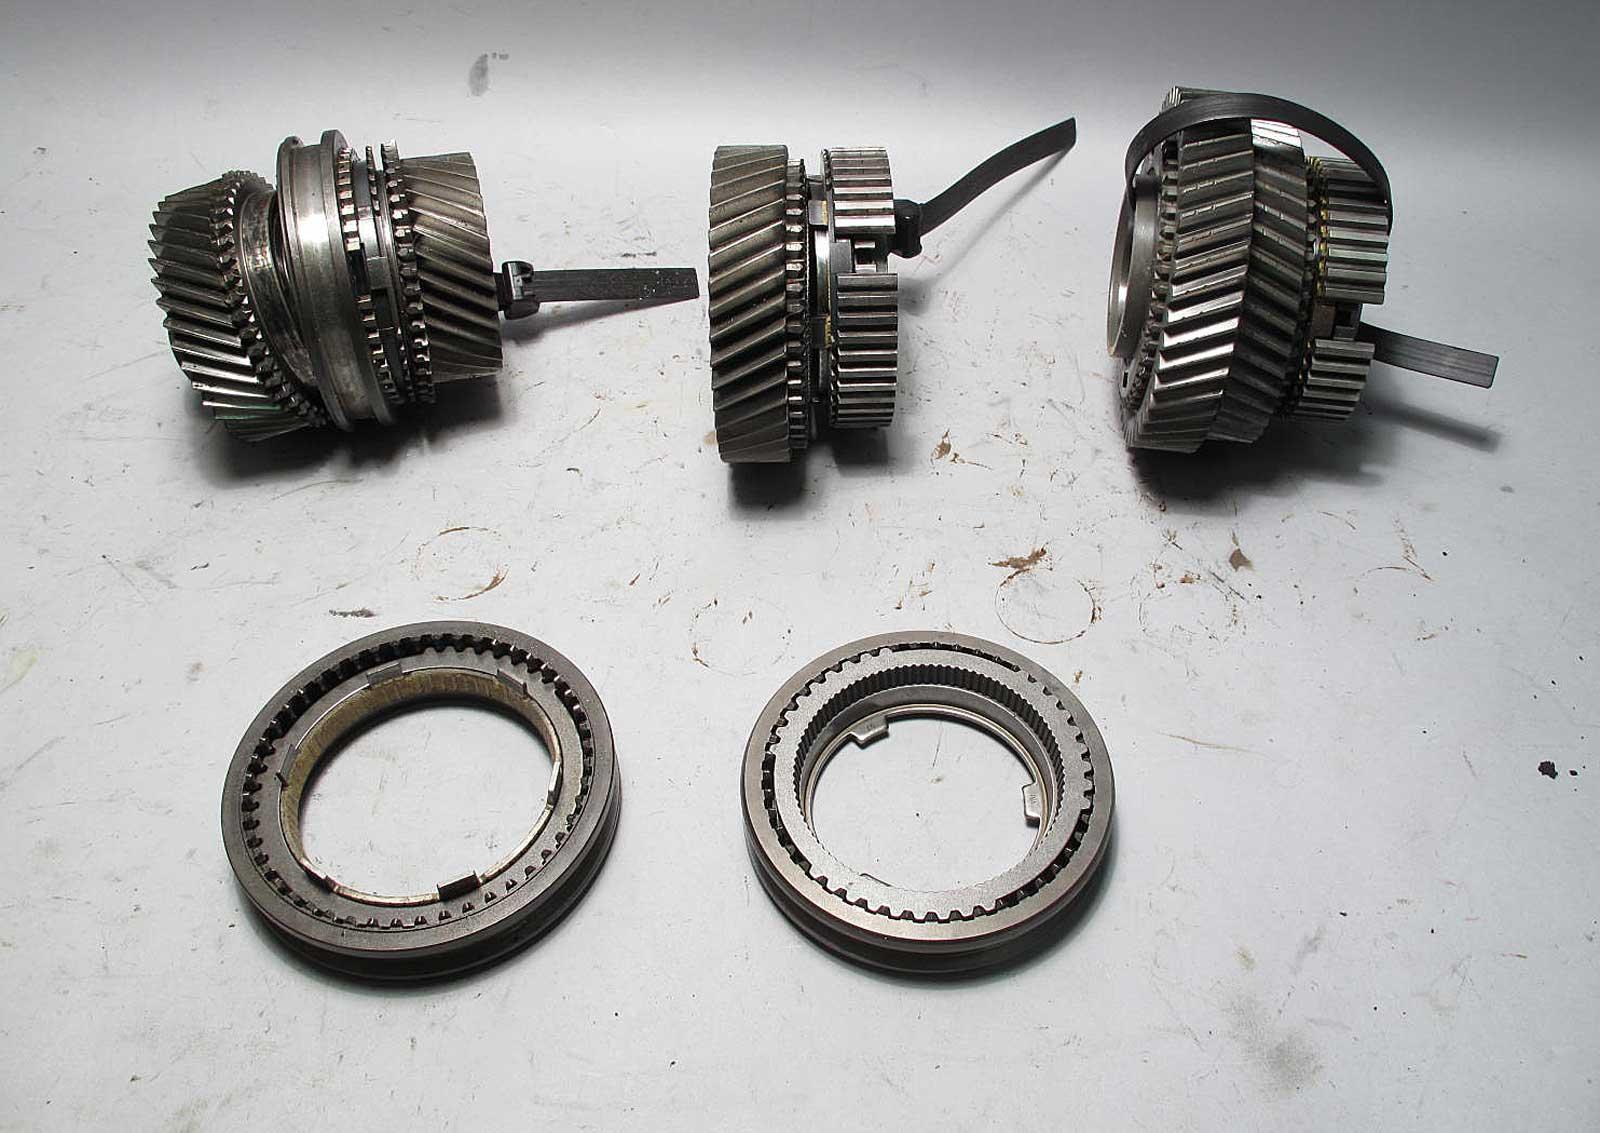 Bmw Zf S5d 320z Manual Transmission Rebuild Parts Gears